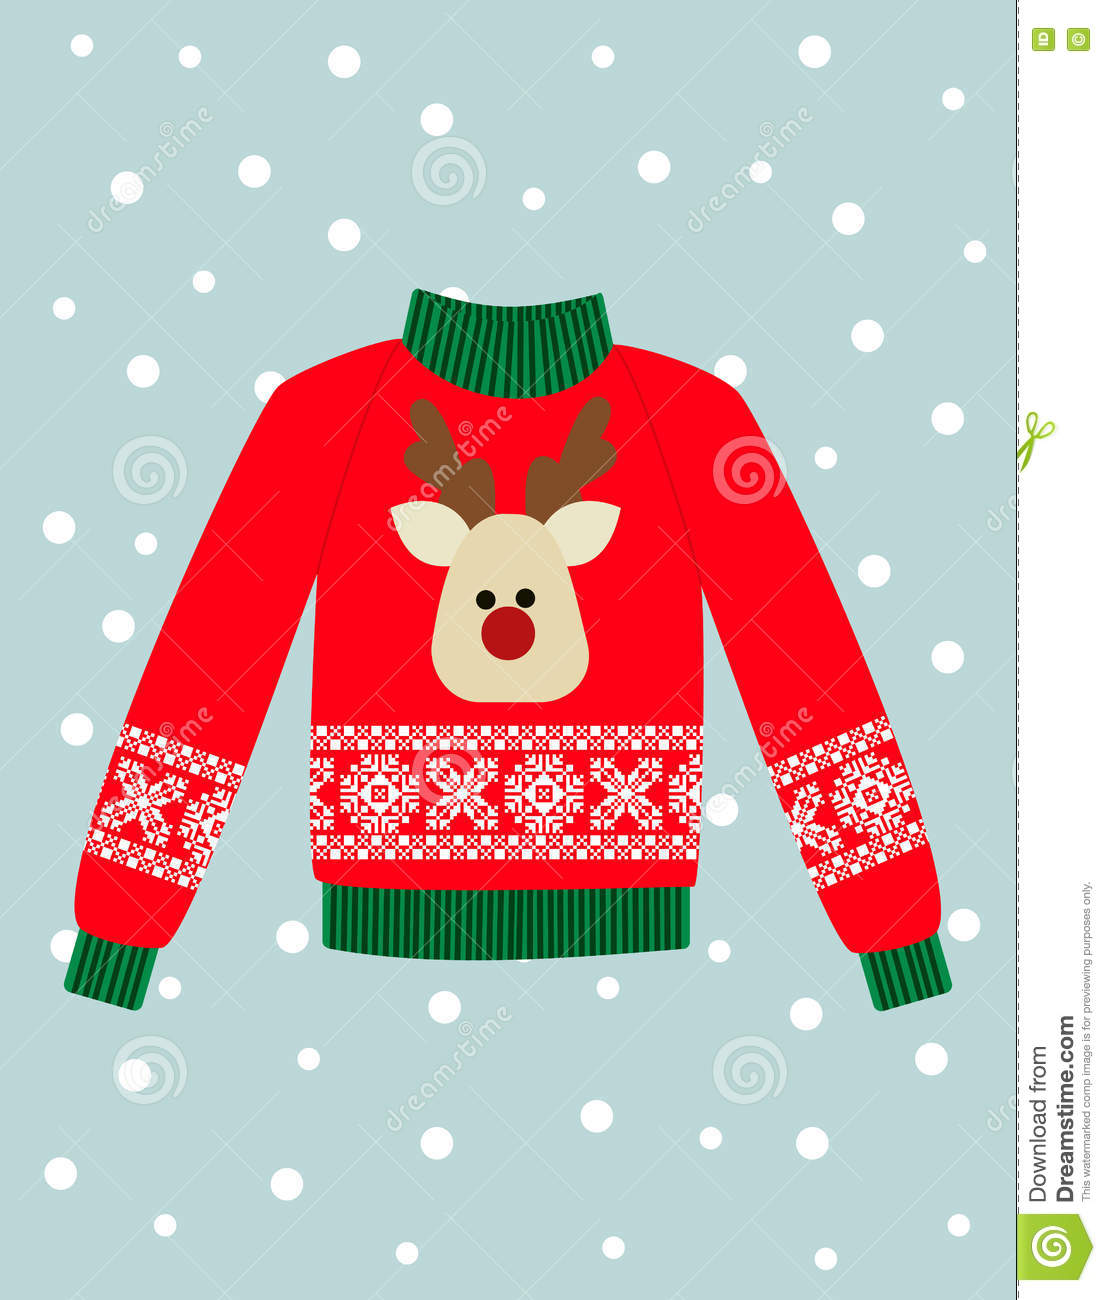 97132ea9930d9 Illustration of a red Christmas sweater with deer. Funny holiday background.  Bright Christmas card.